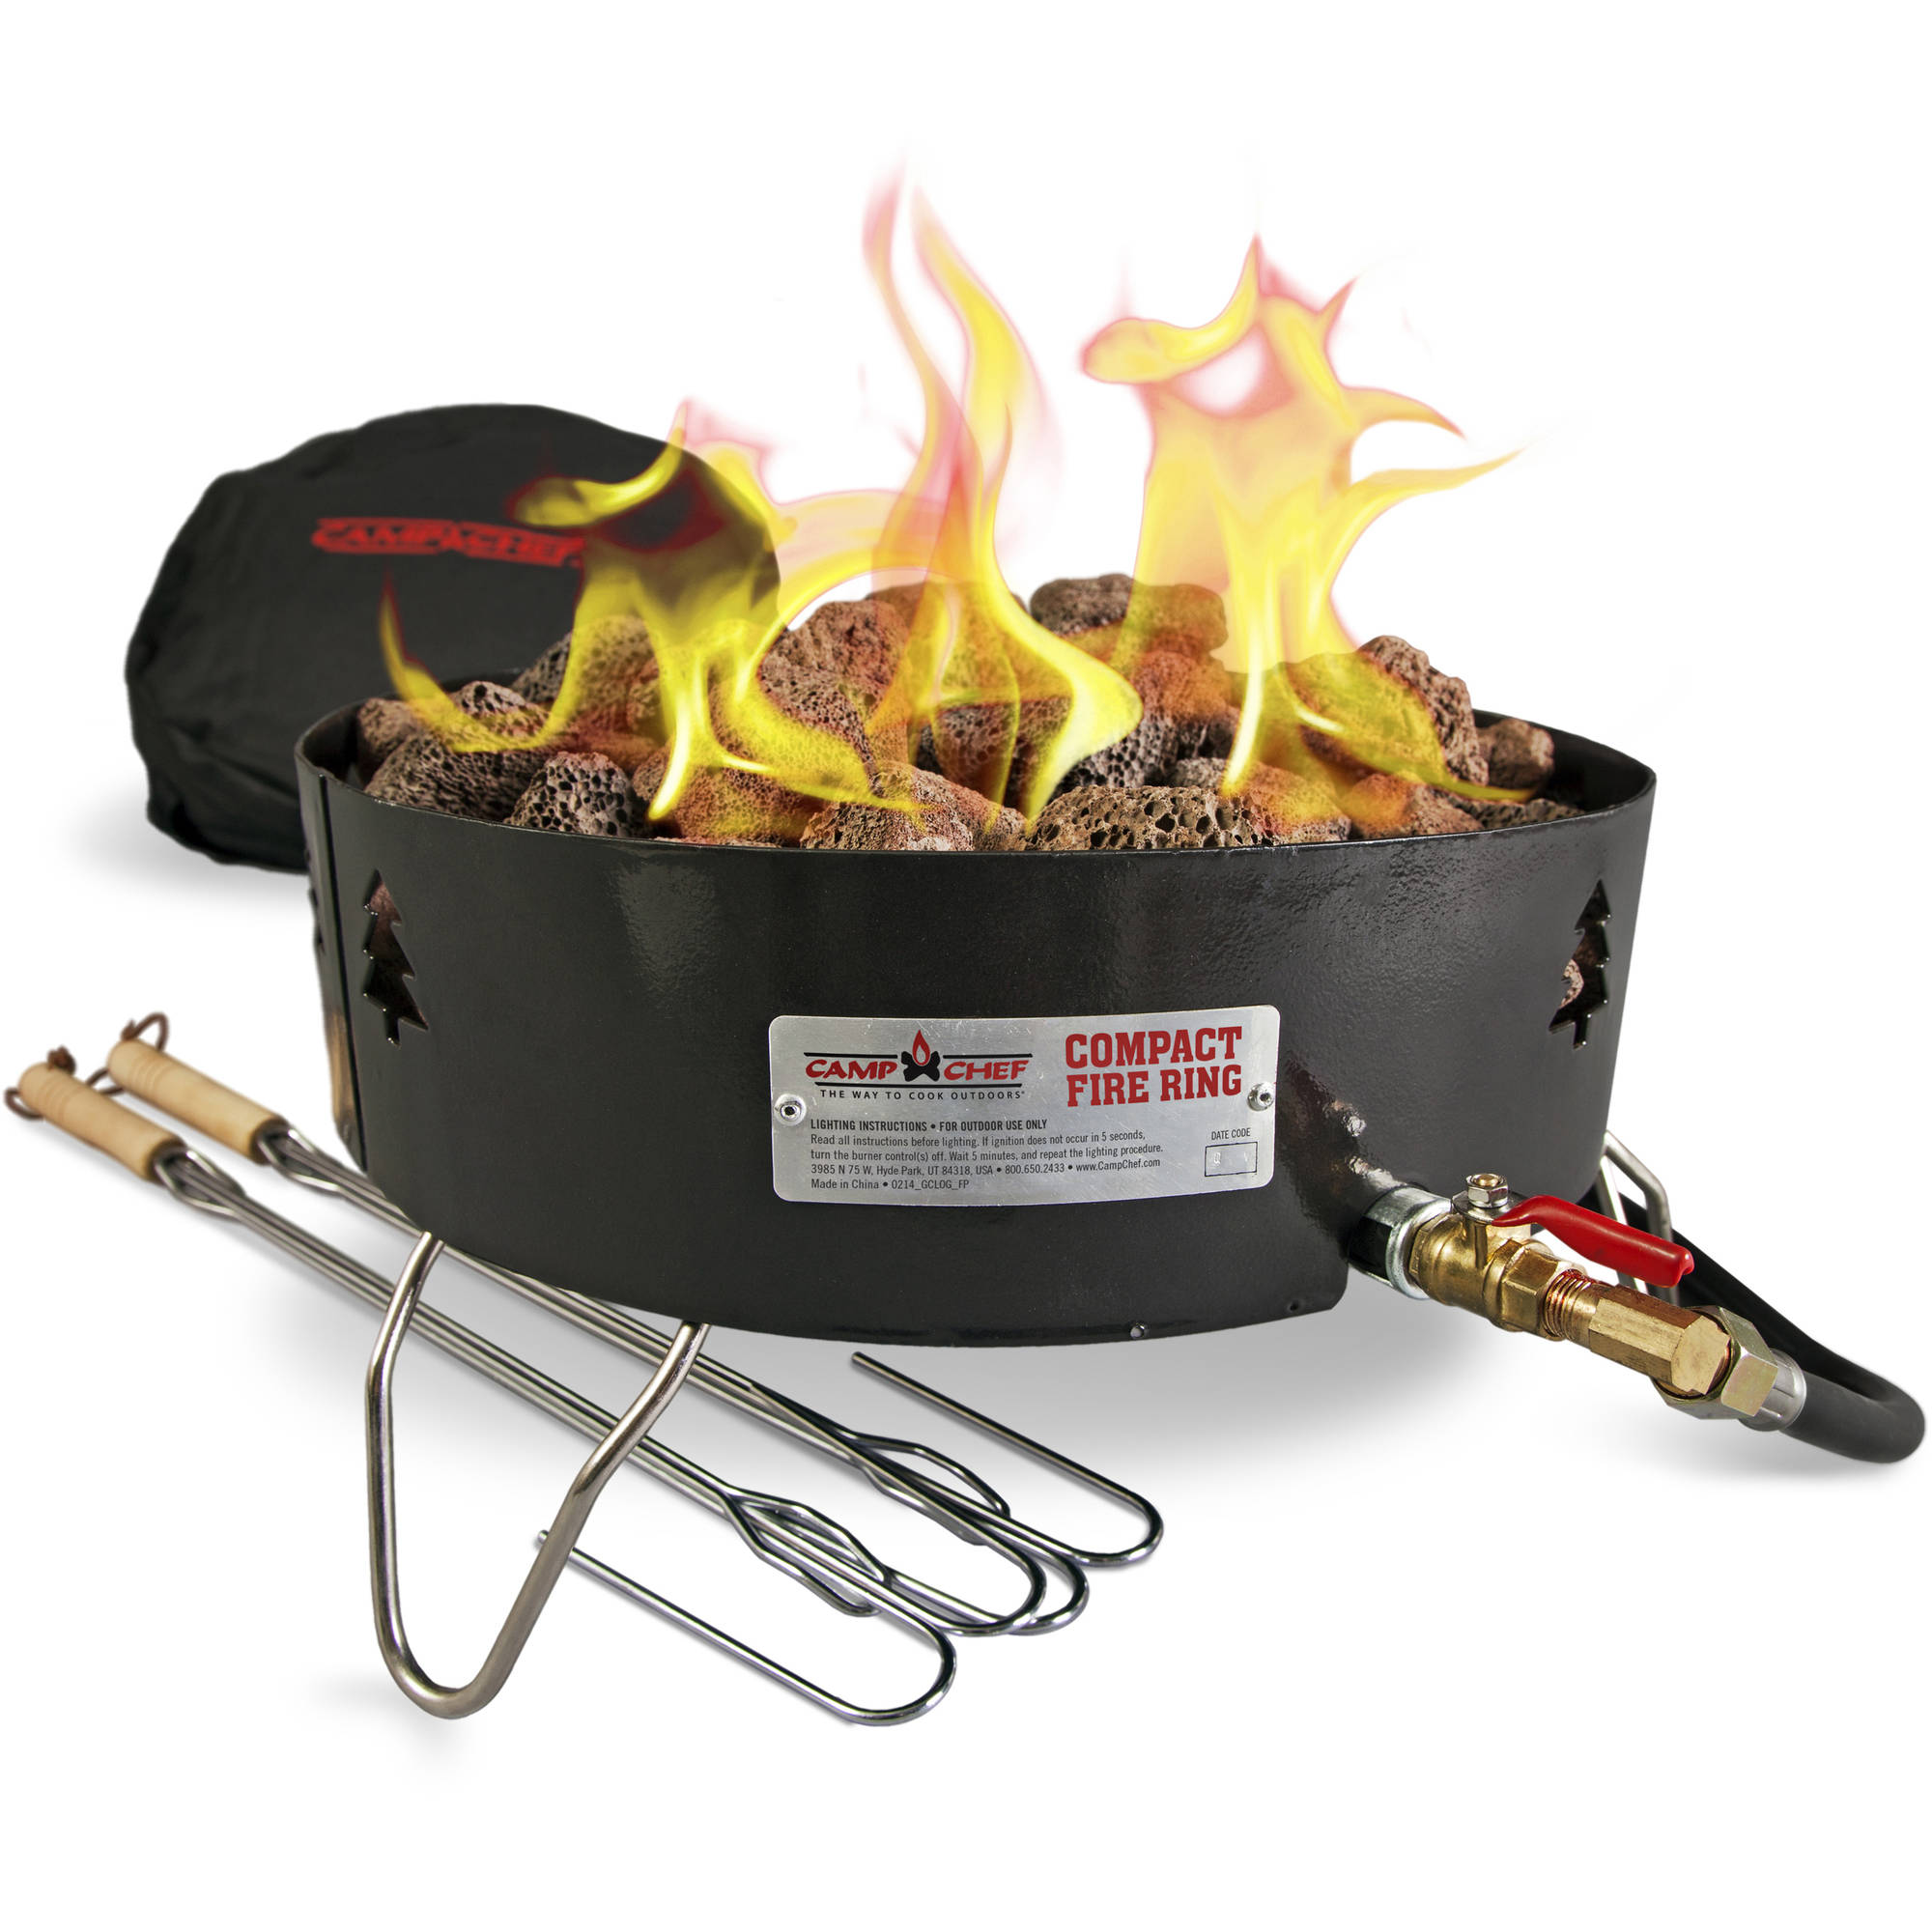 Camp Chef Campfire Pit Portable Outdoor Propane Fire Pit